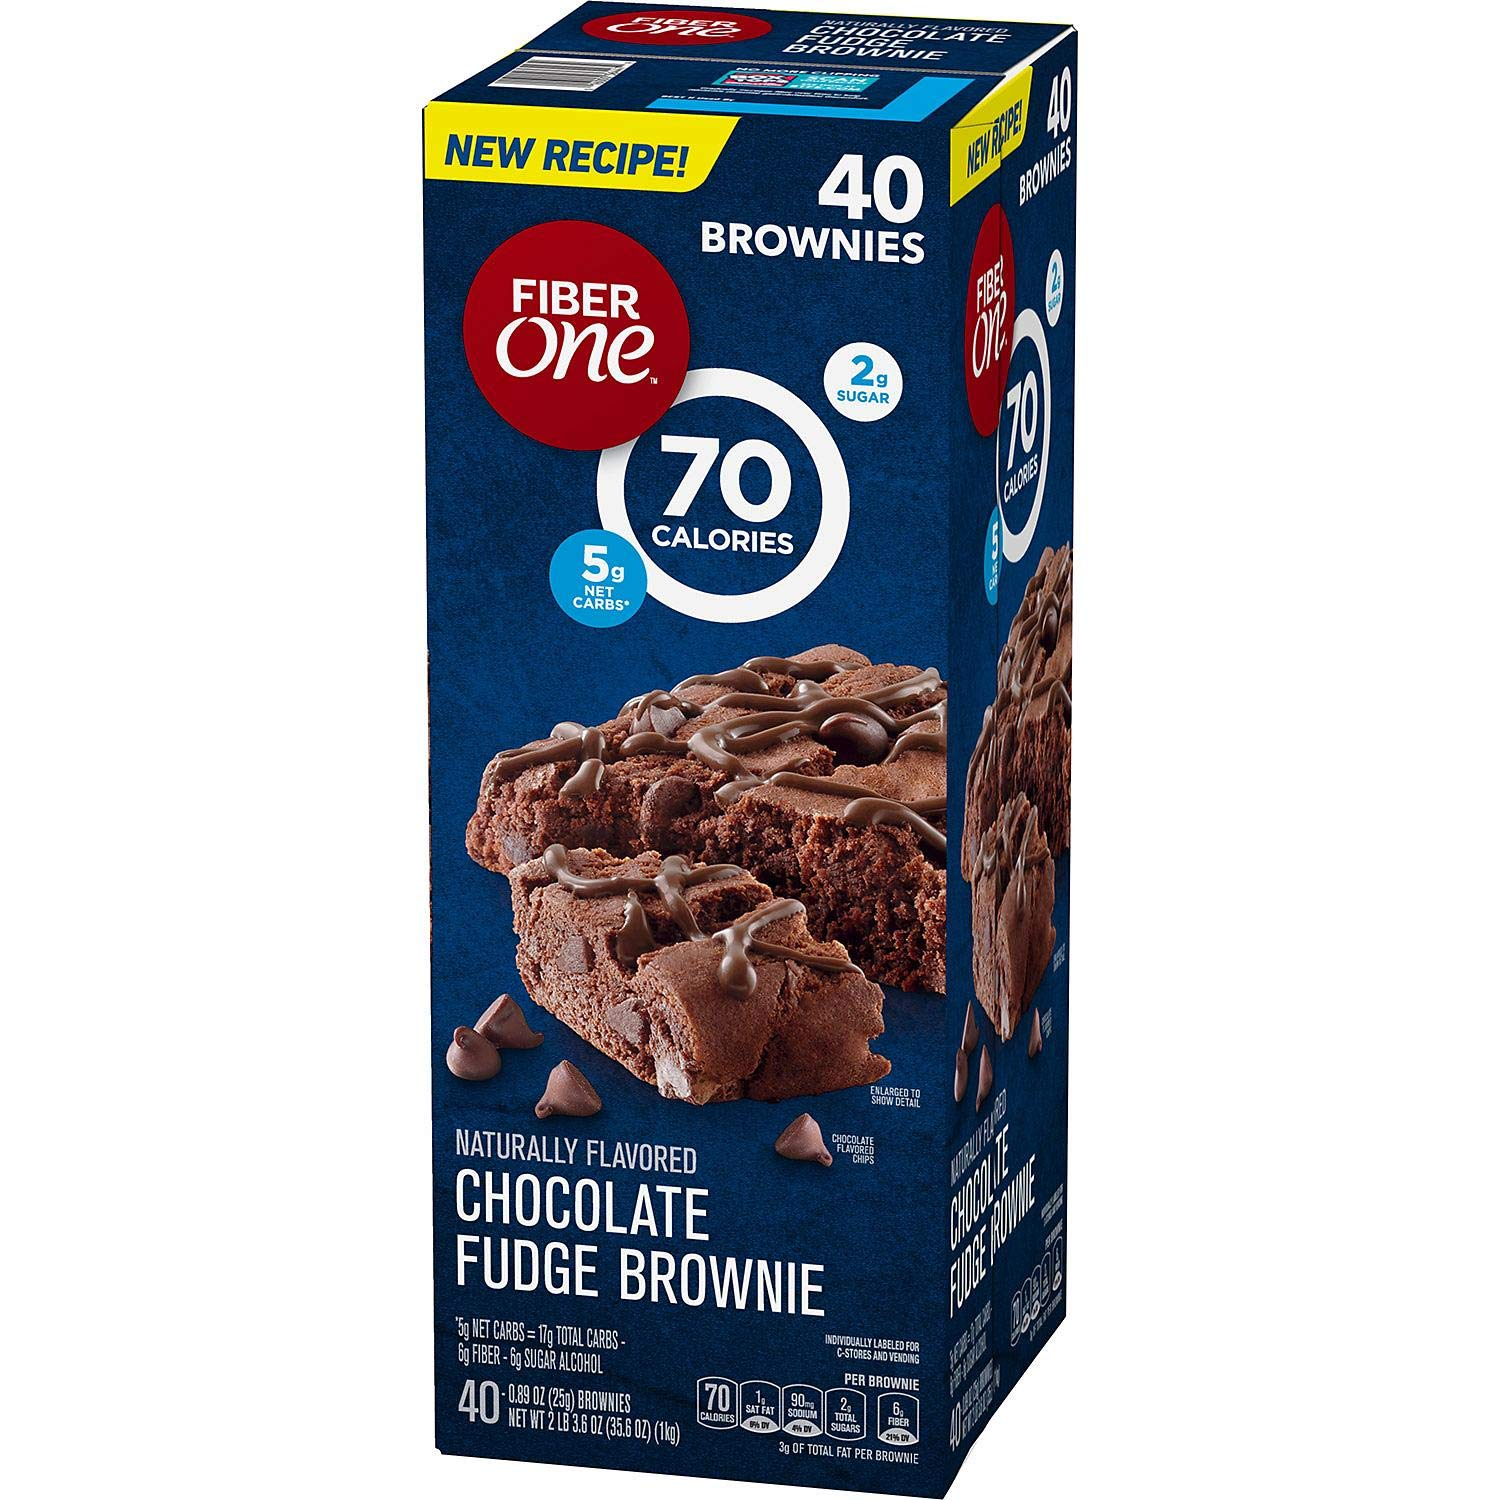 Fiber One Brownies Chocolate Fudge, 70 Calories (40 Count) by Fiber One